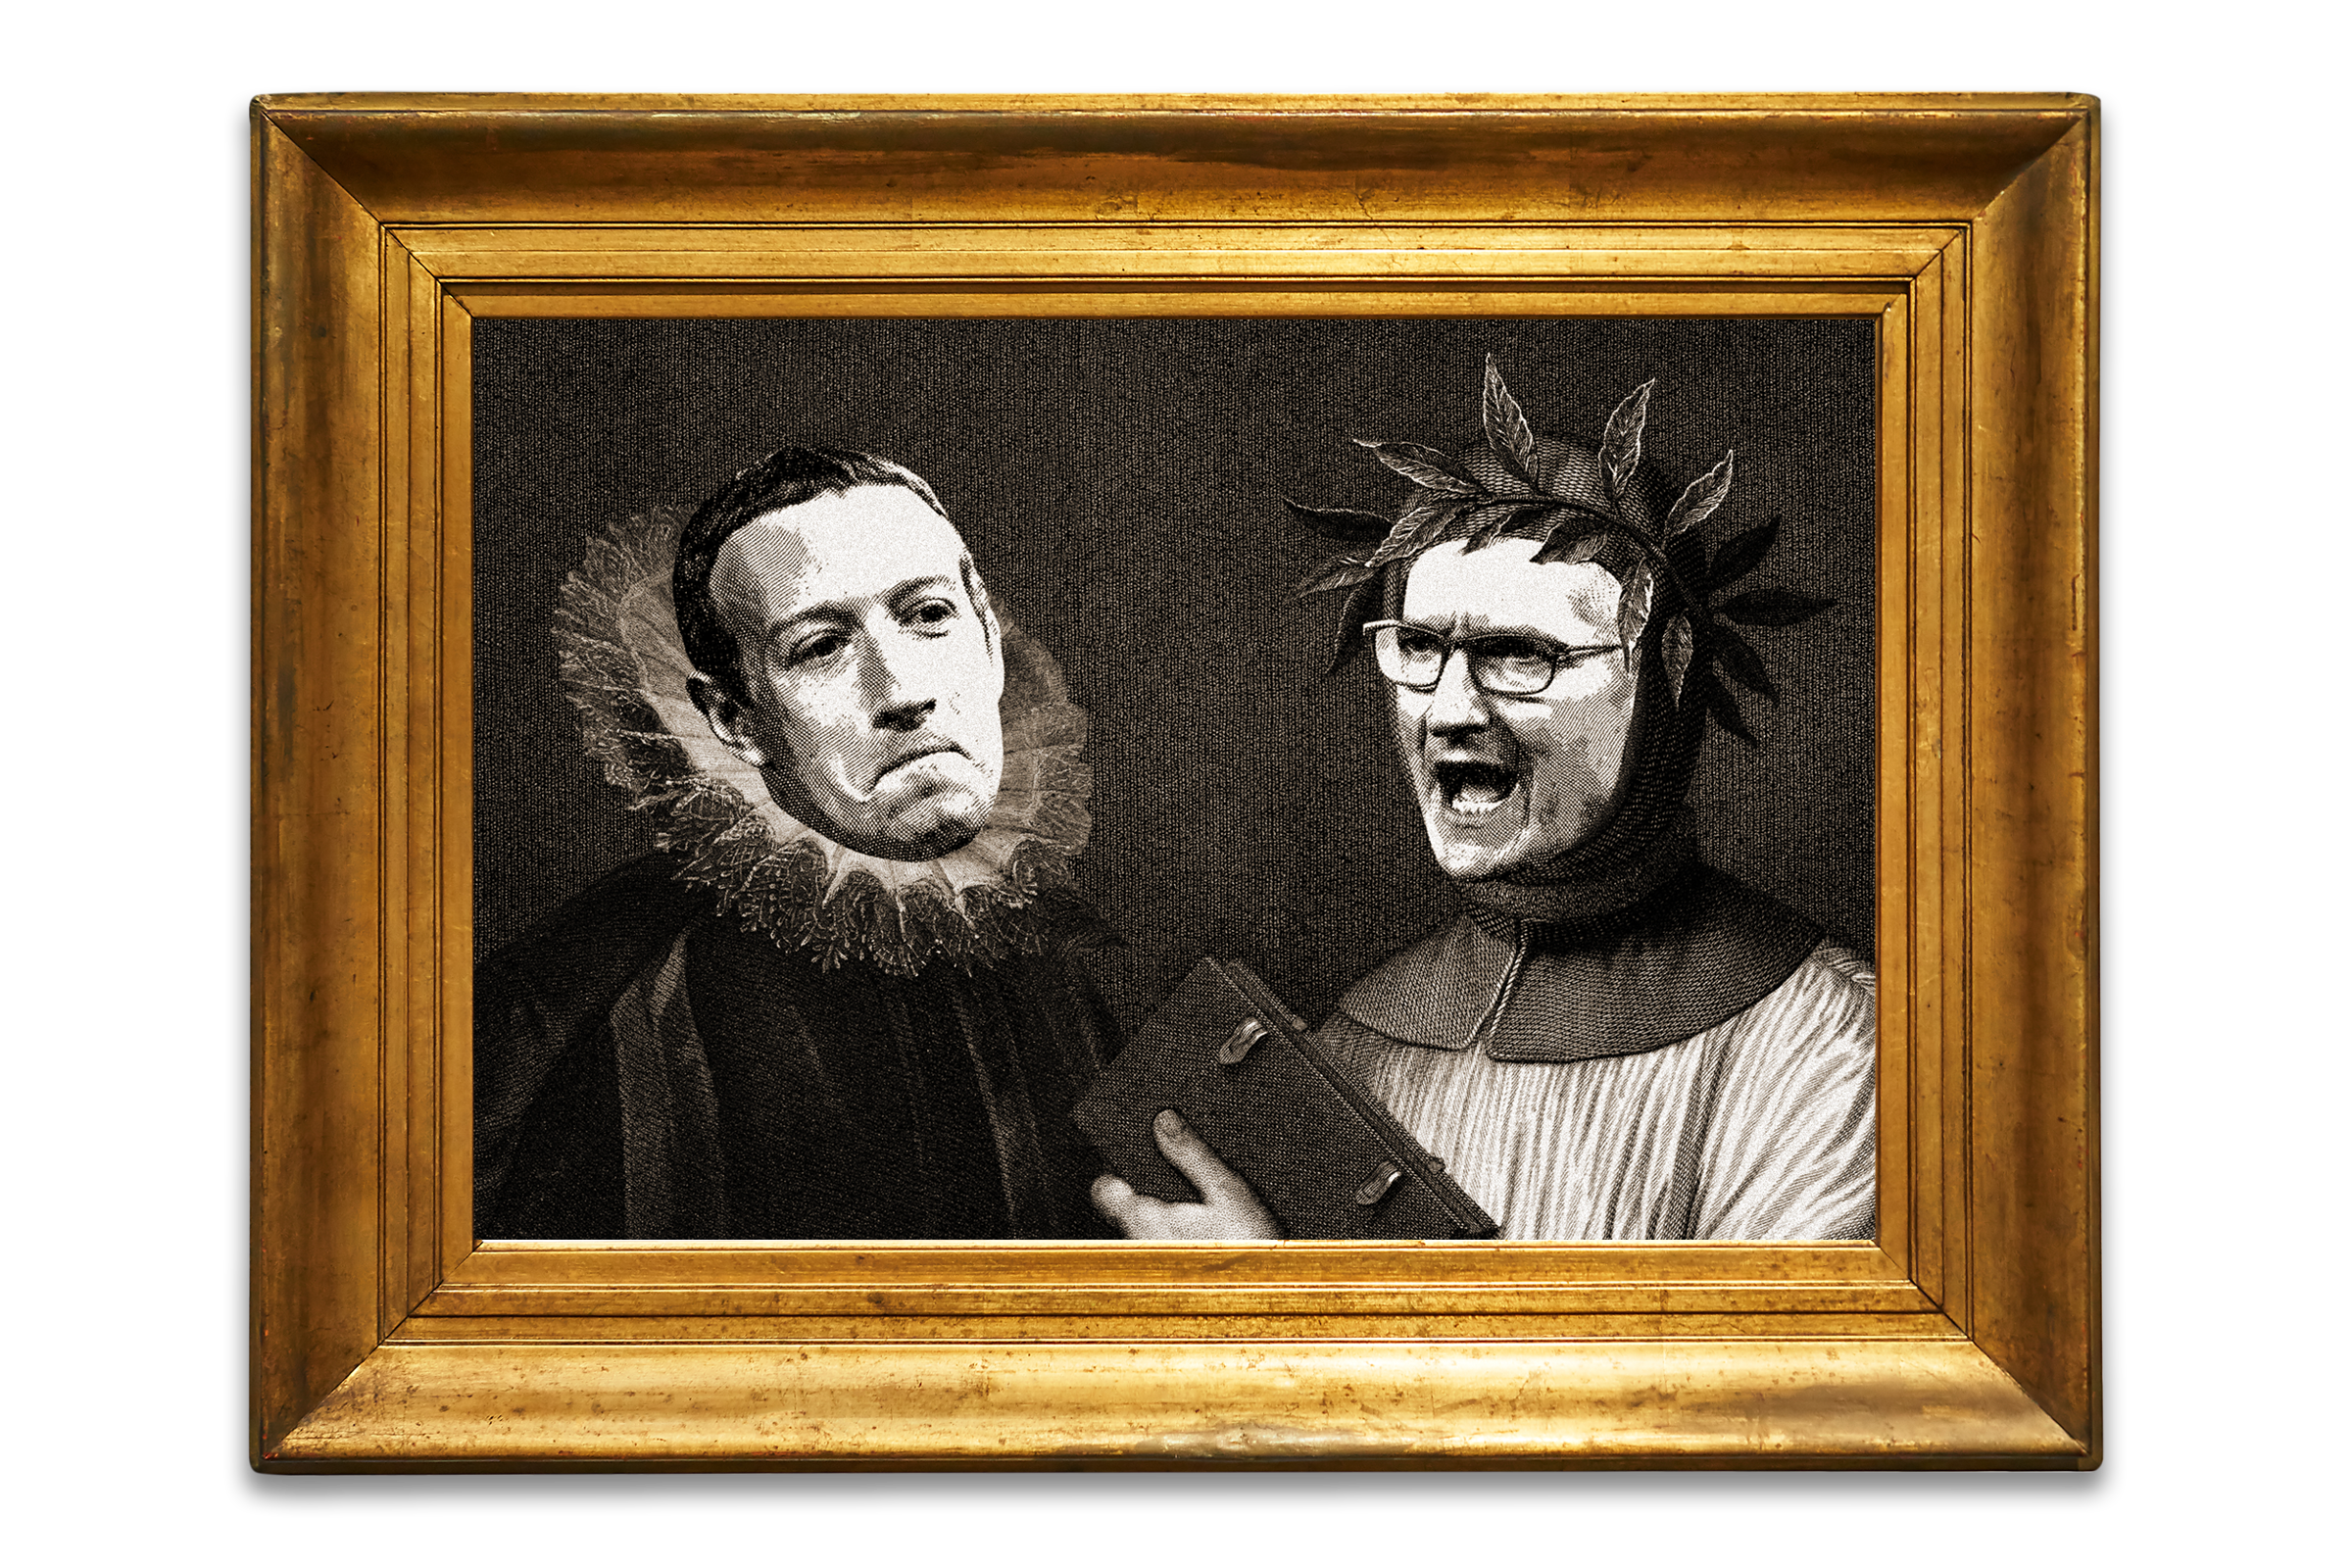 A photo illustration of Mark Zuckerberg and Tim Cook faces superimposed on to famous ancient orators in a painting and arguing.